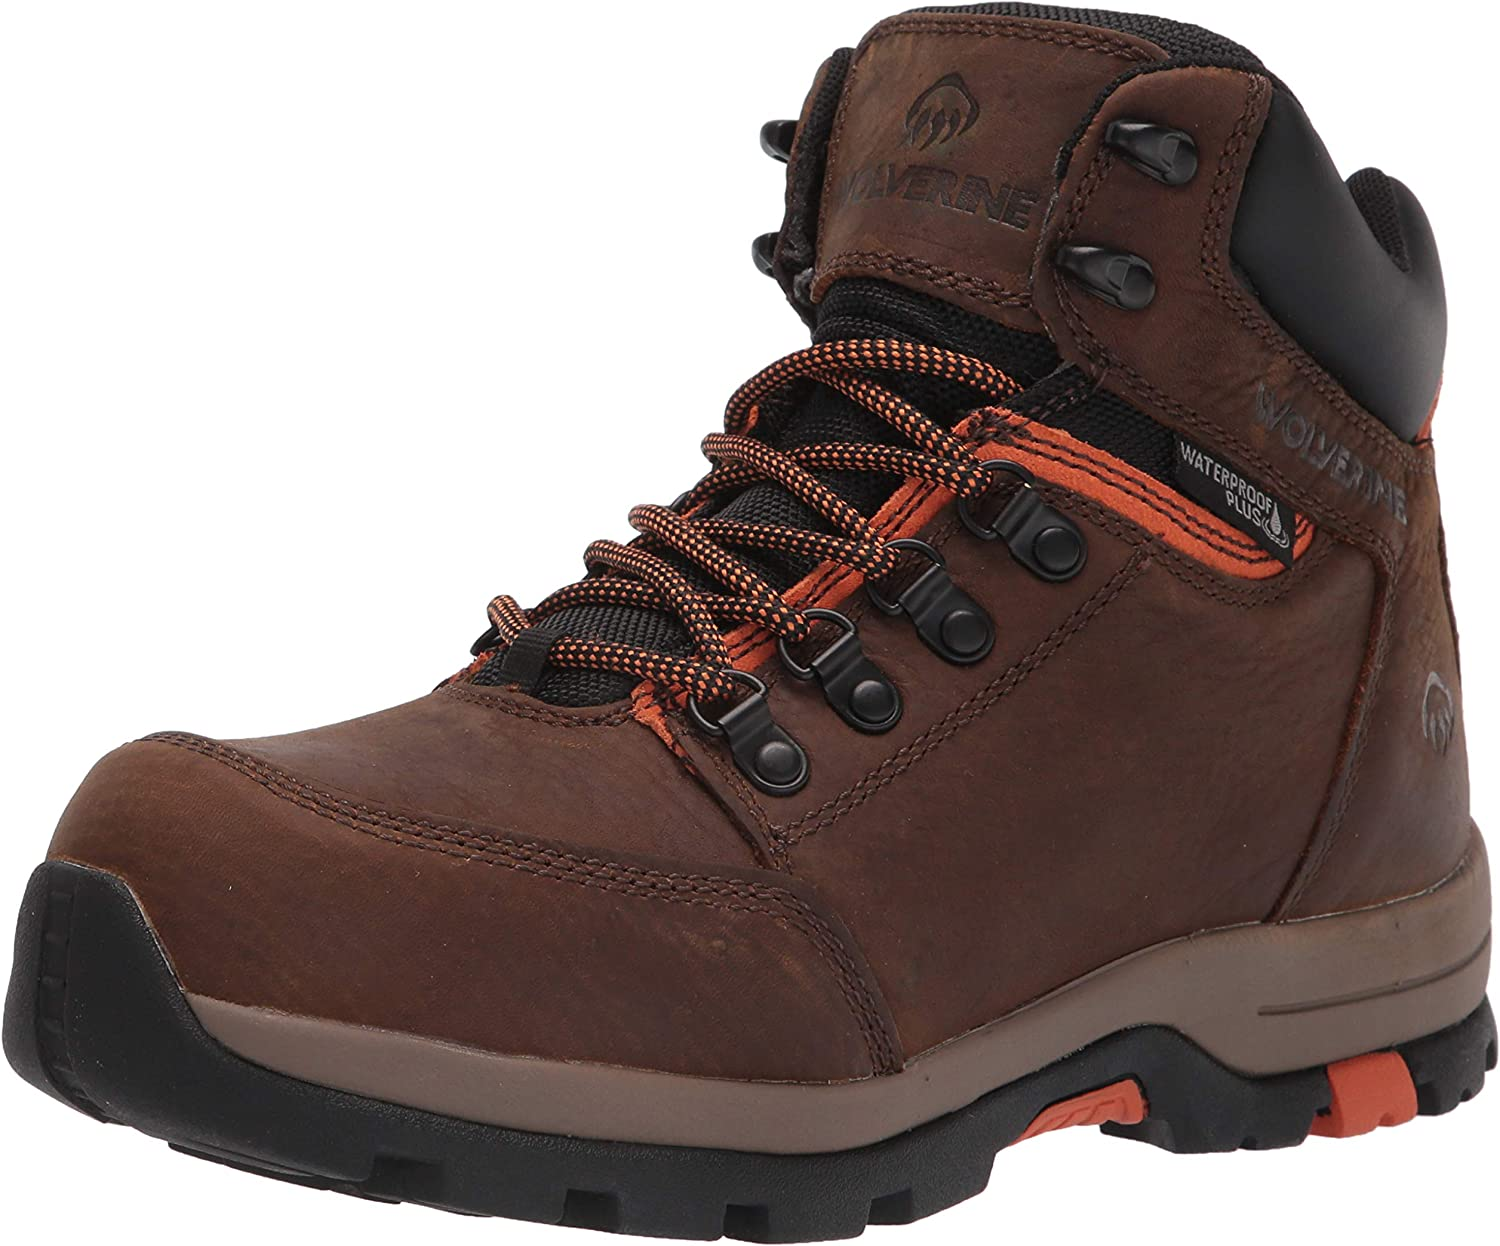 WOLVERINE Men's Tulsa Mall Grayson Mid St Construction Boot All items in the store